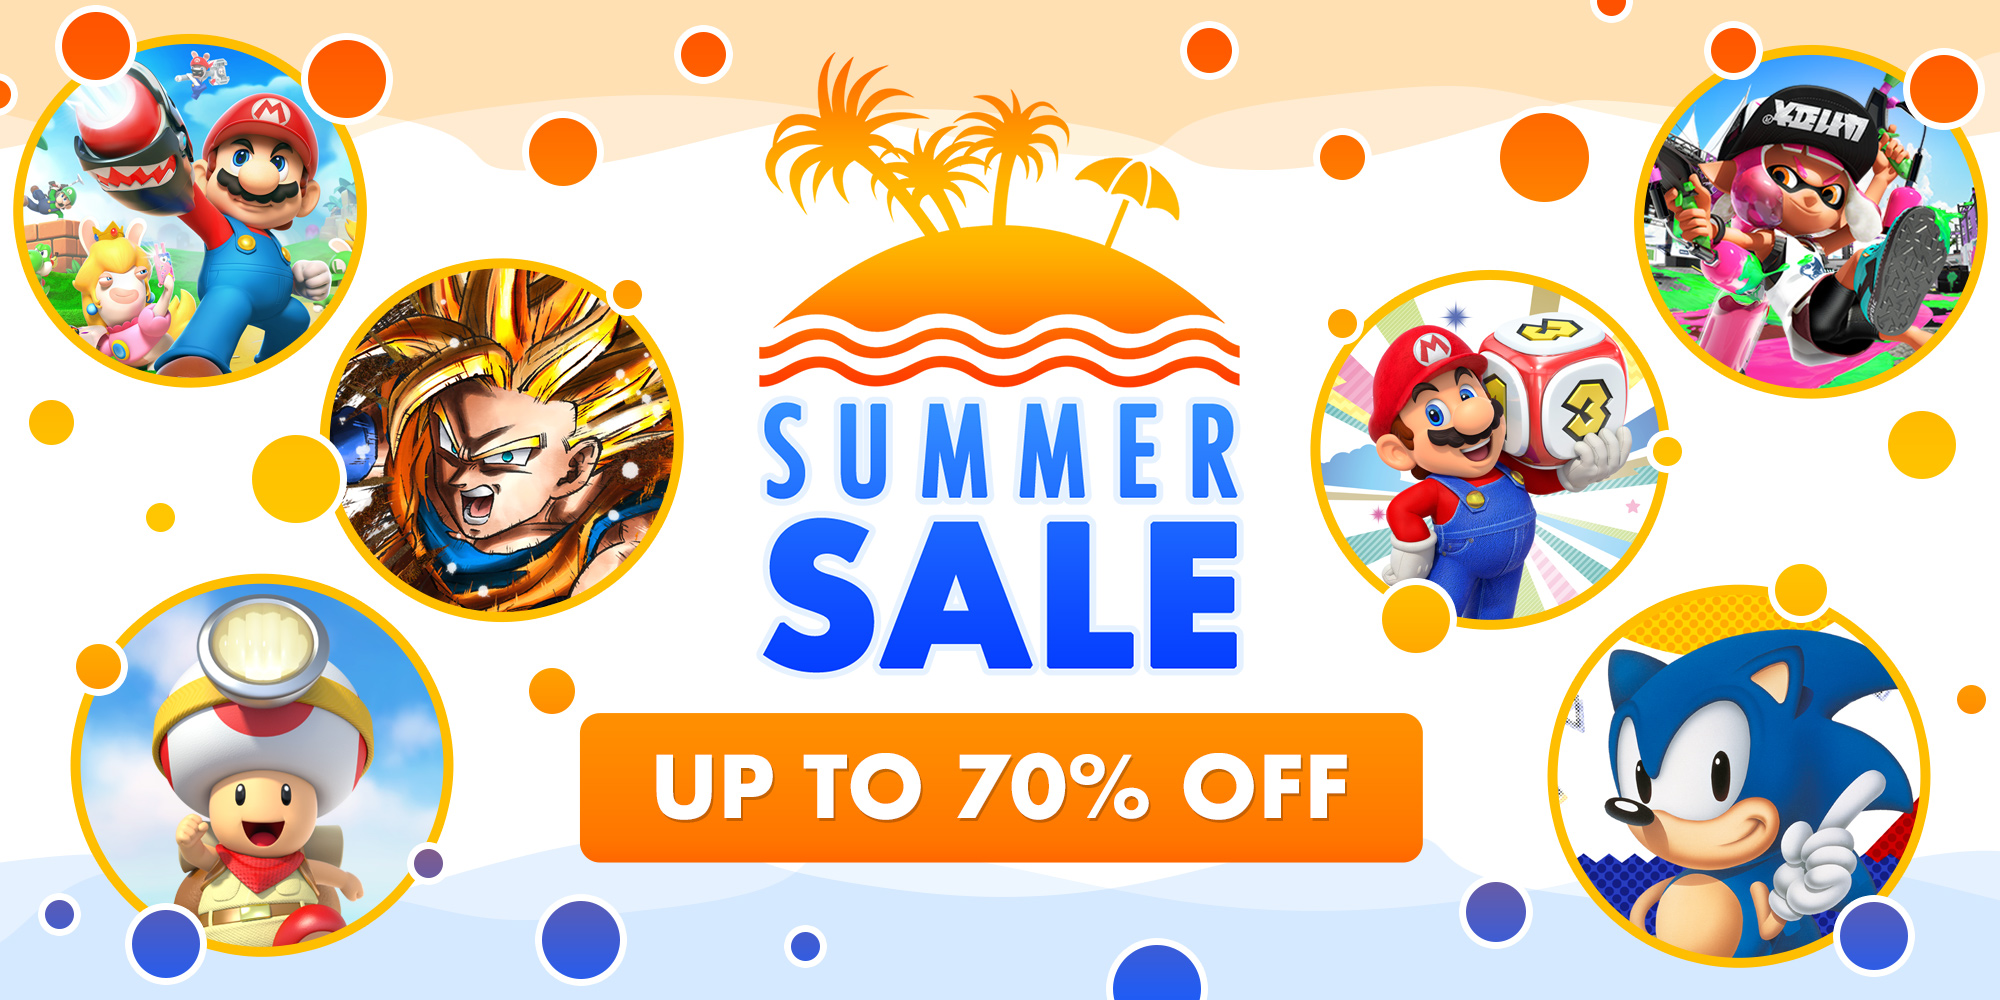 Summer sale clipart 25 image library Nintendo eShop Sale | Store | Nintendo image library